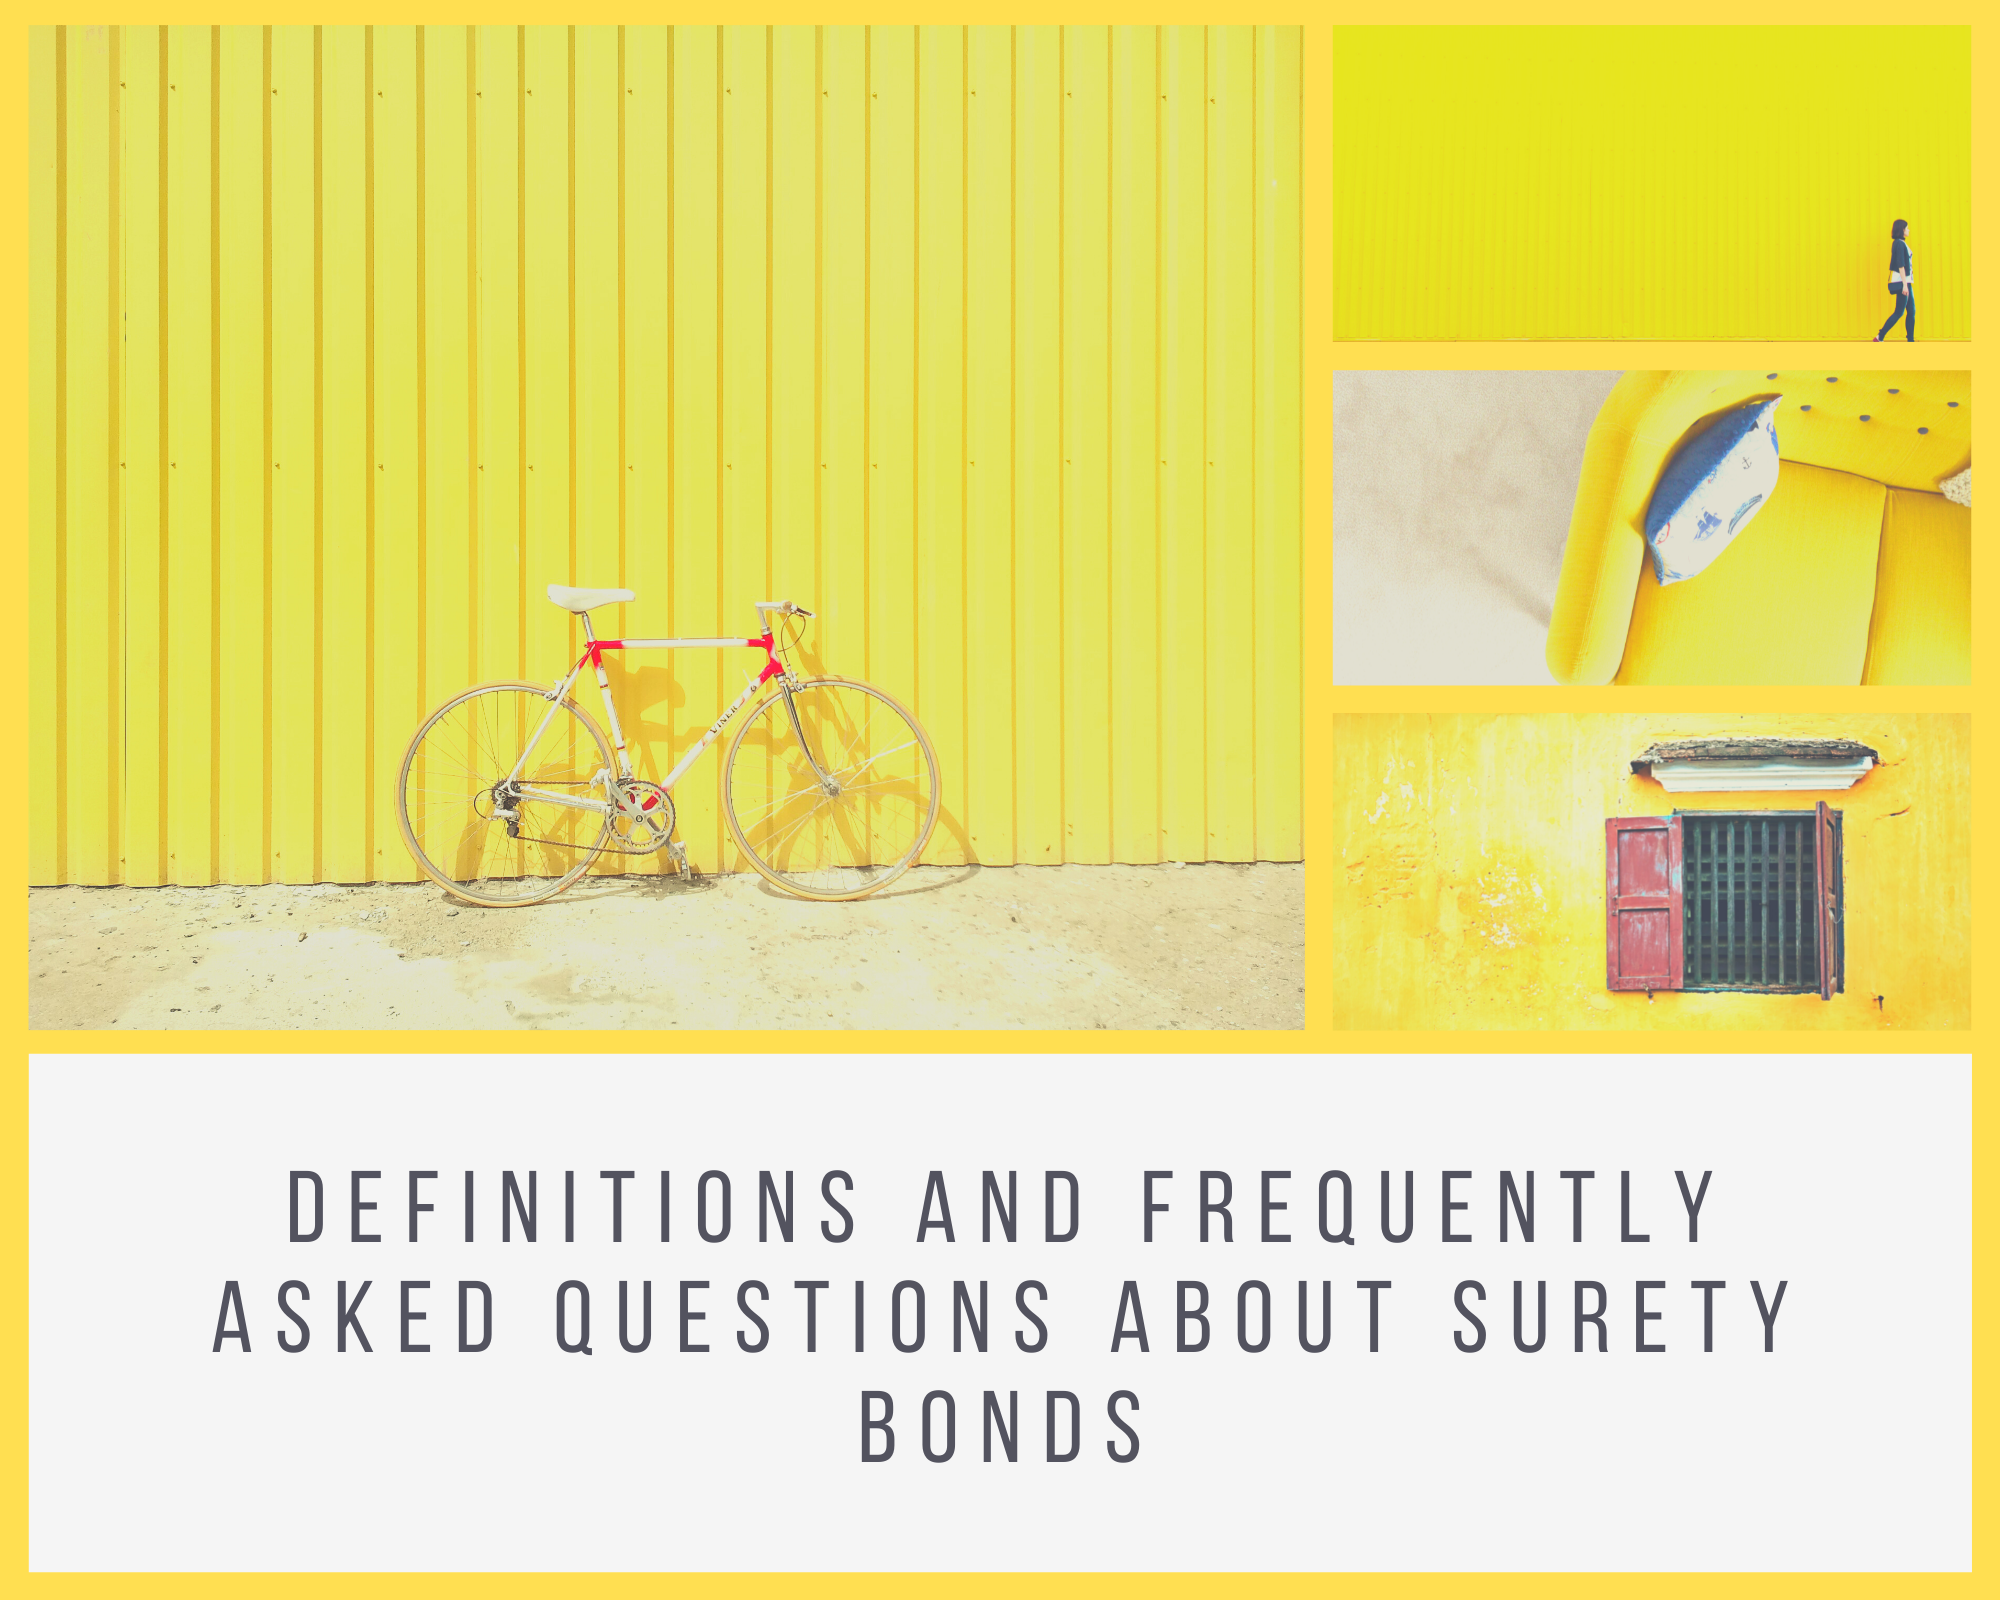 surety bonds - what is the definition of a surety bond - bike and books in yellow background